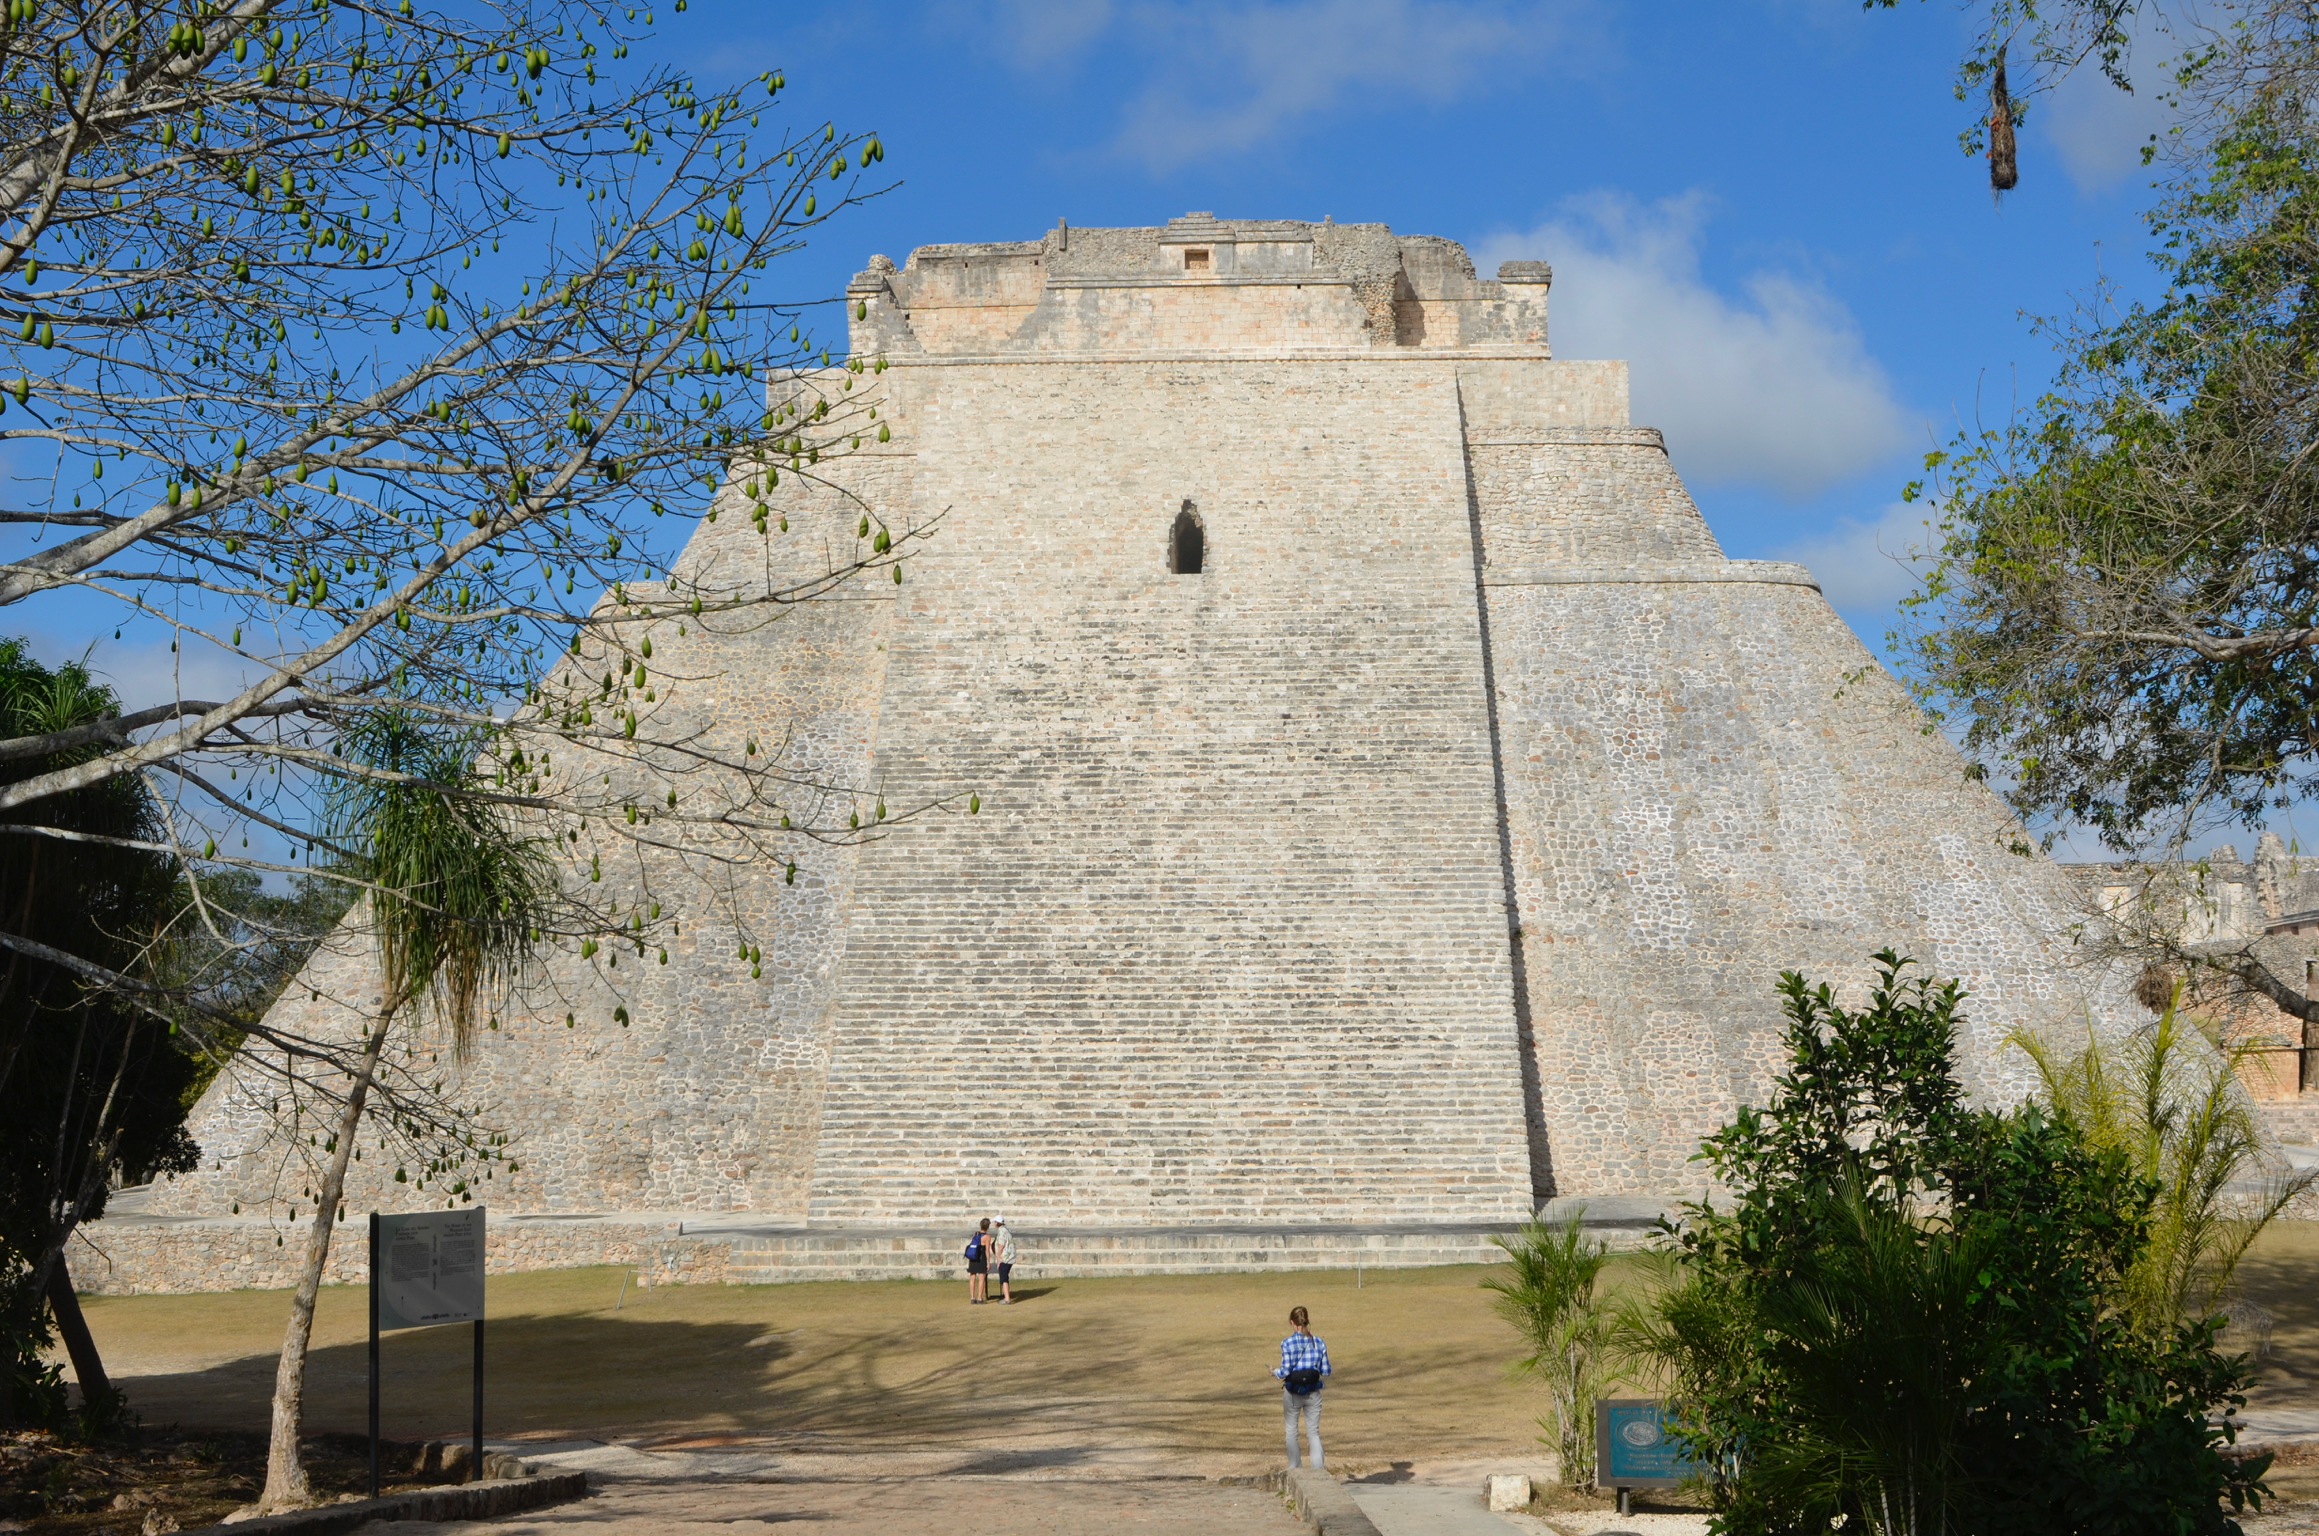 This is the pyramid that answers with a quetzal's cry when you clap your hands in front of it.